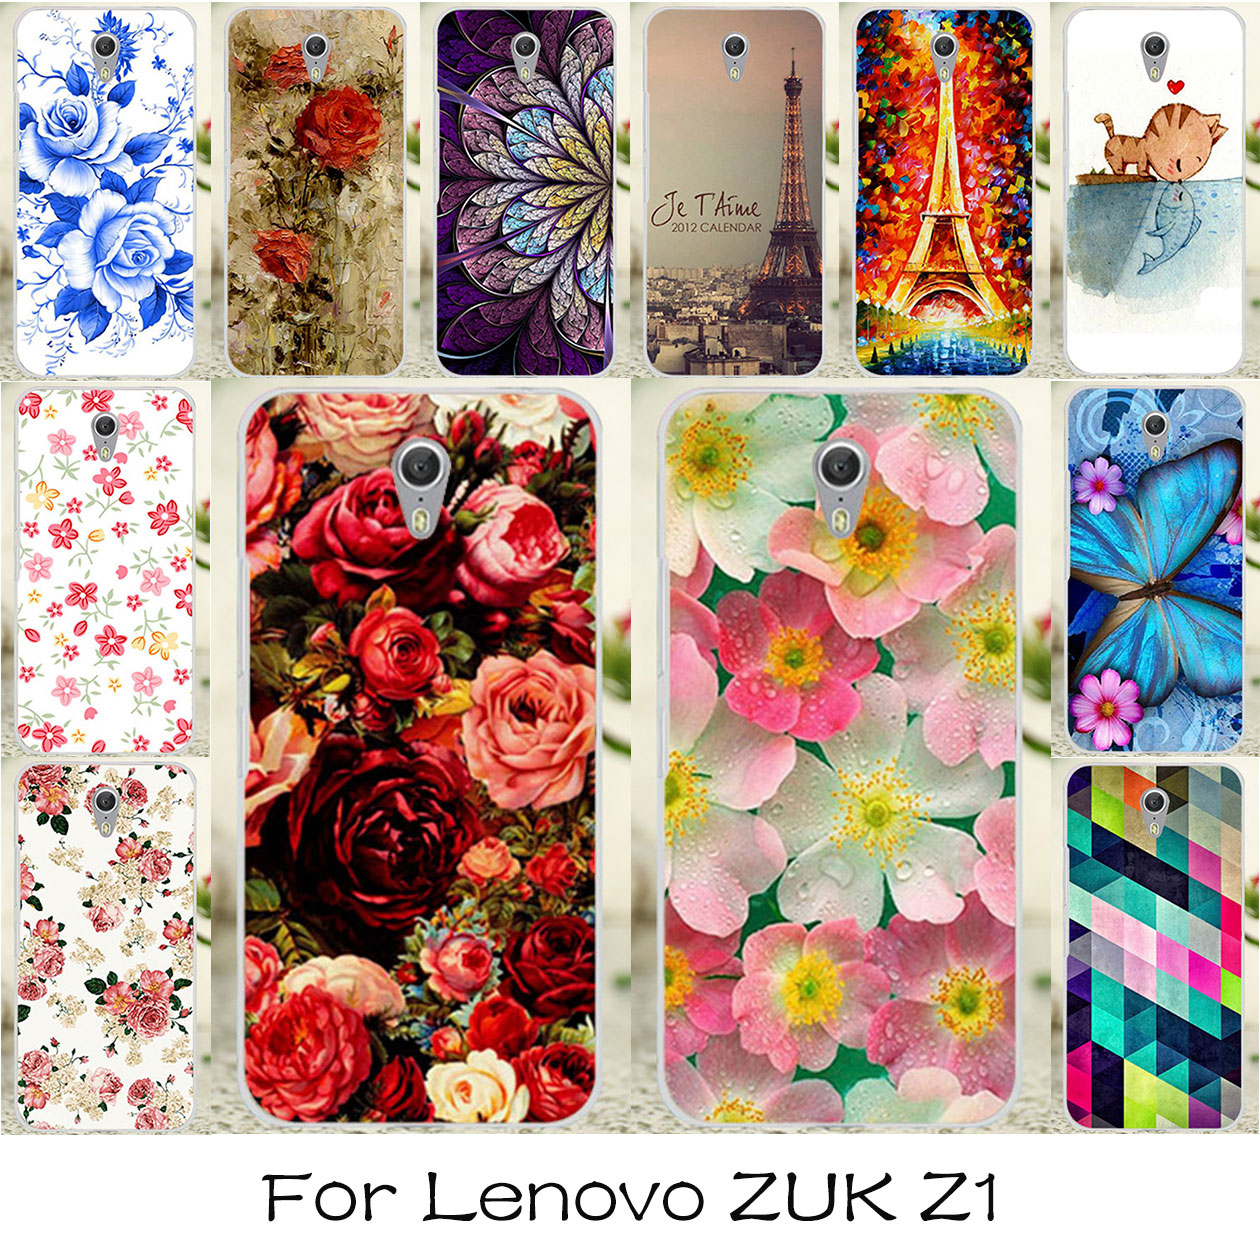 Galleria fotografica TAOYUNXI Silicone Plastic Phone <font><b>Covers</b></font> Cases For Lenovo ZUK Z1 Z1221 5.5 inch Bag Shock-Proof <font><b>Covers</b></font> Colorful Flower Cases Skin